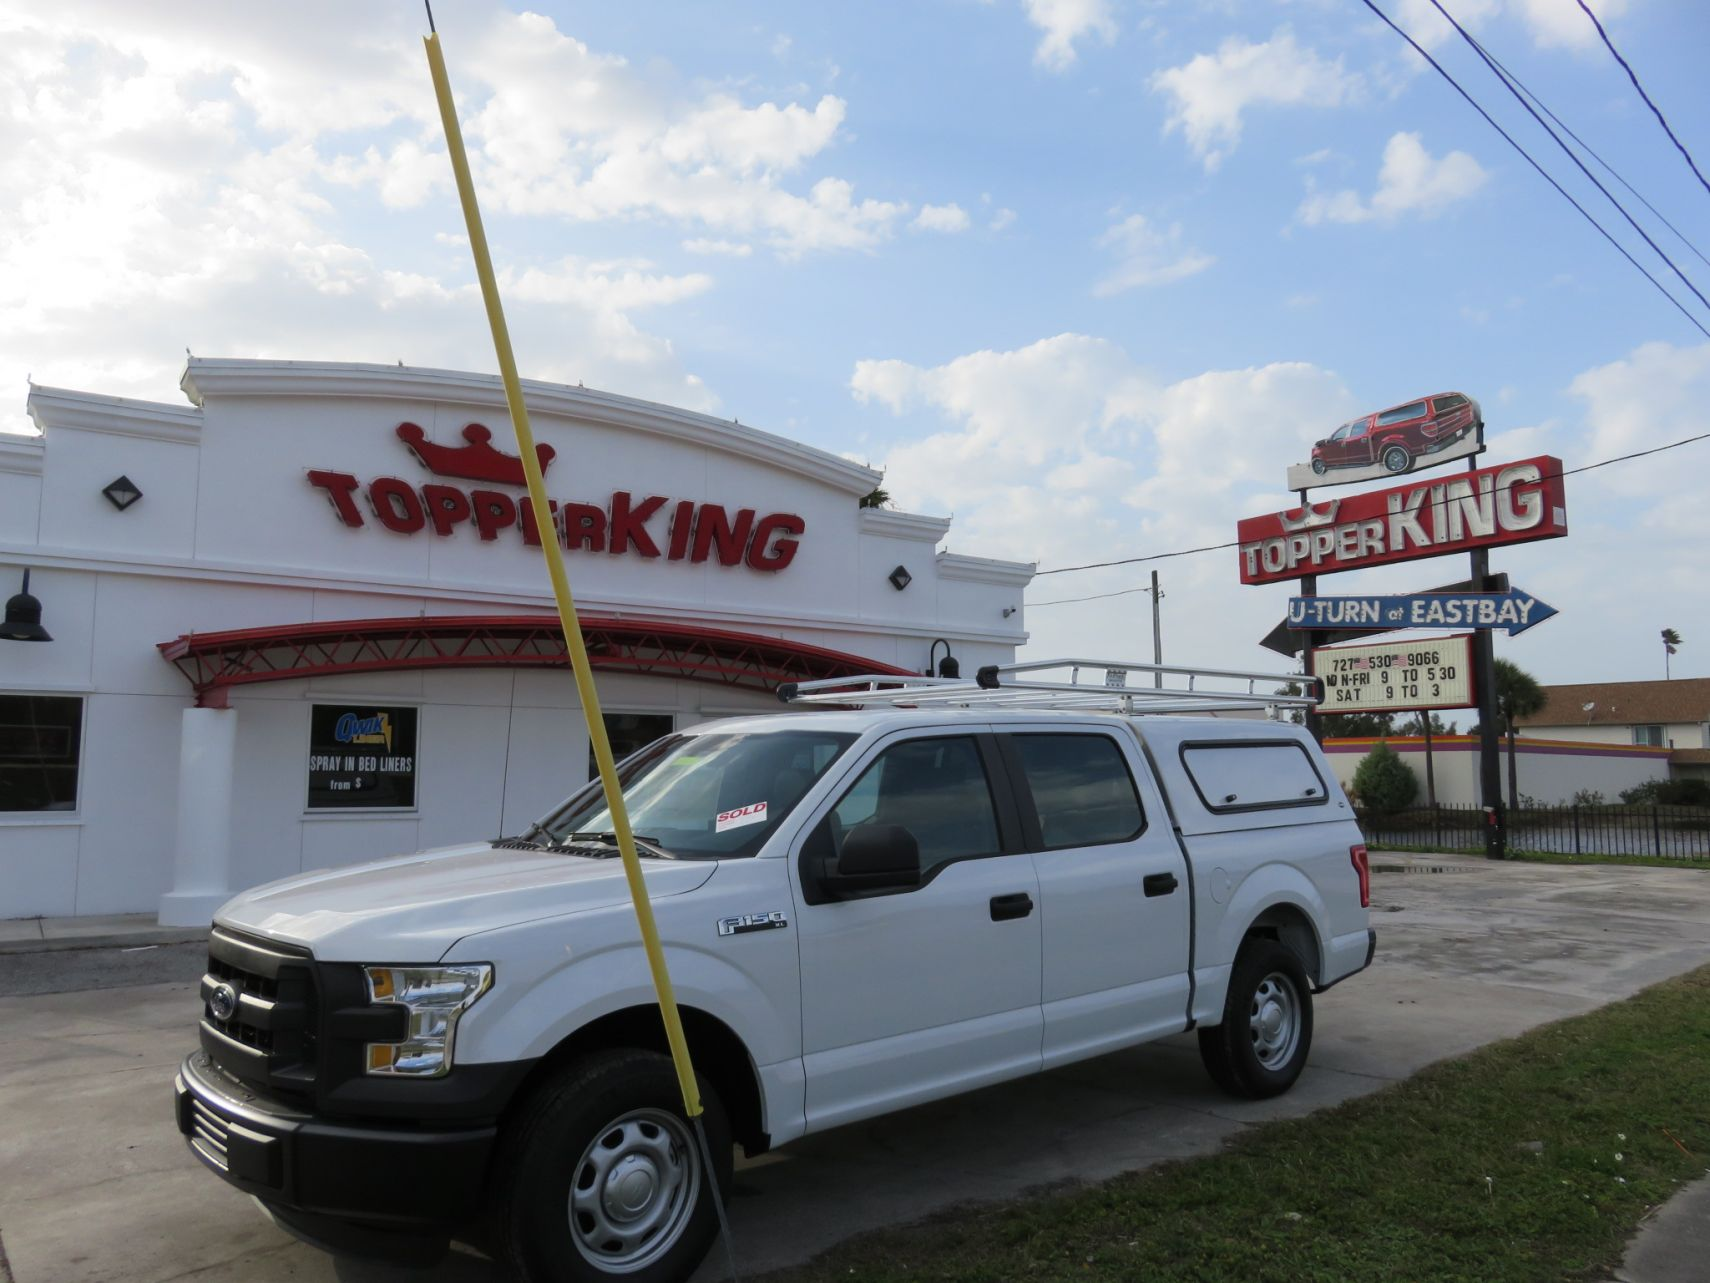 2015 White Ford F150 Ranch Sierra Solid Side Windows, Roof Racks, and Custom hitch by TopperKING in Brandon, FL 813-689-2449 or Clearwater, FL 727-530-9066.